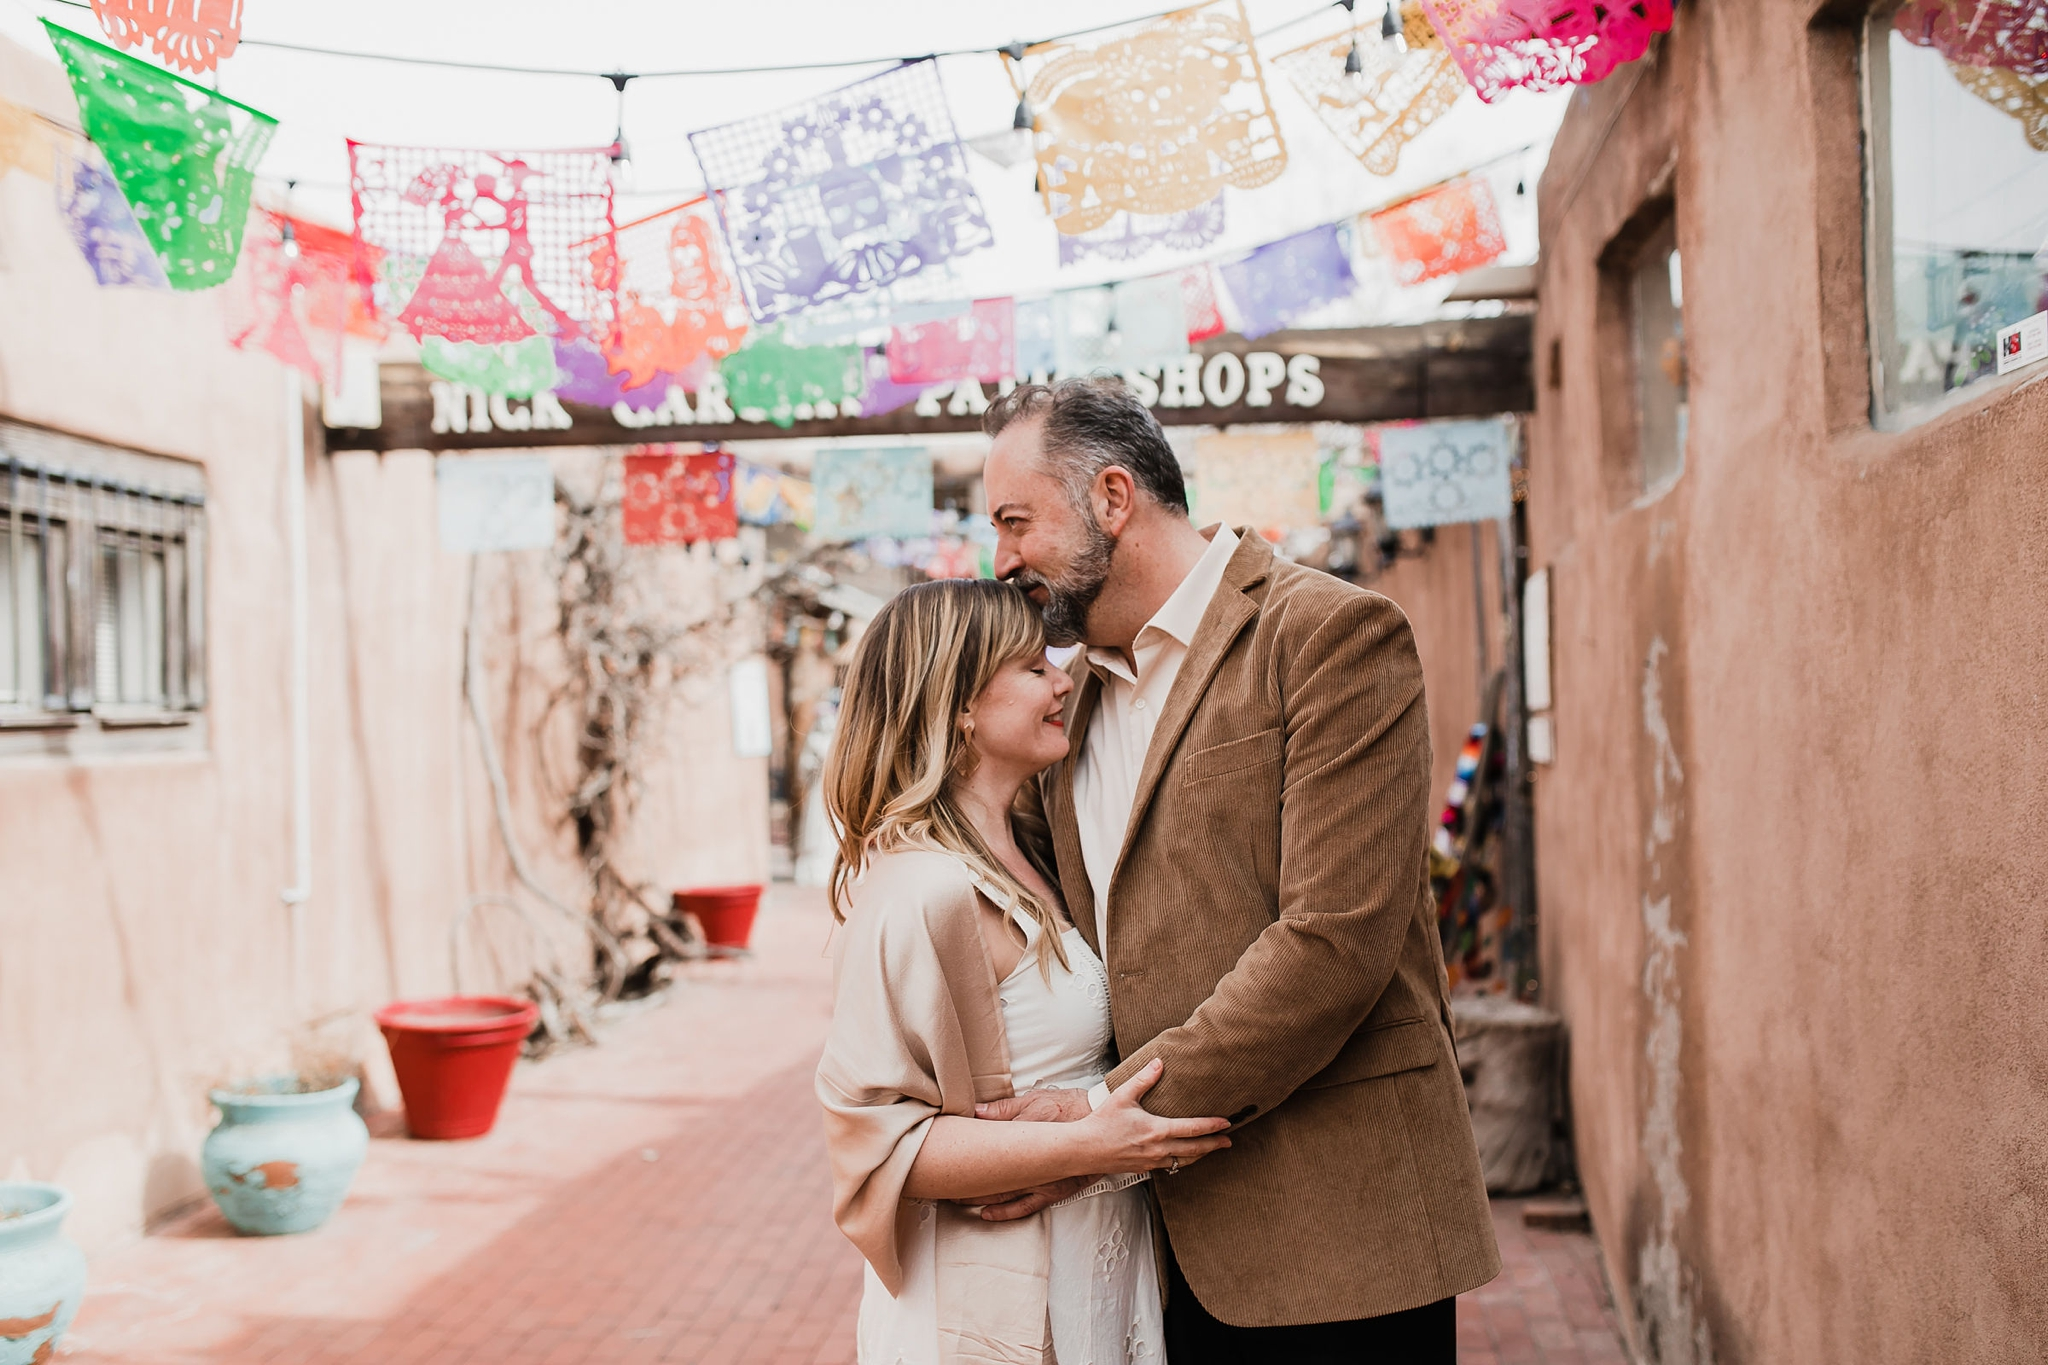 Alicia+lucia+photography+-+albuquerque+wedding+photographer+-+santa+fe+wedding+photography+-+new+mexico+wedding+photographer+-+new+mexico+engagement+-+albuquerque+engagement+-+old+town+engagement_0003.jpg